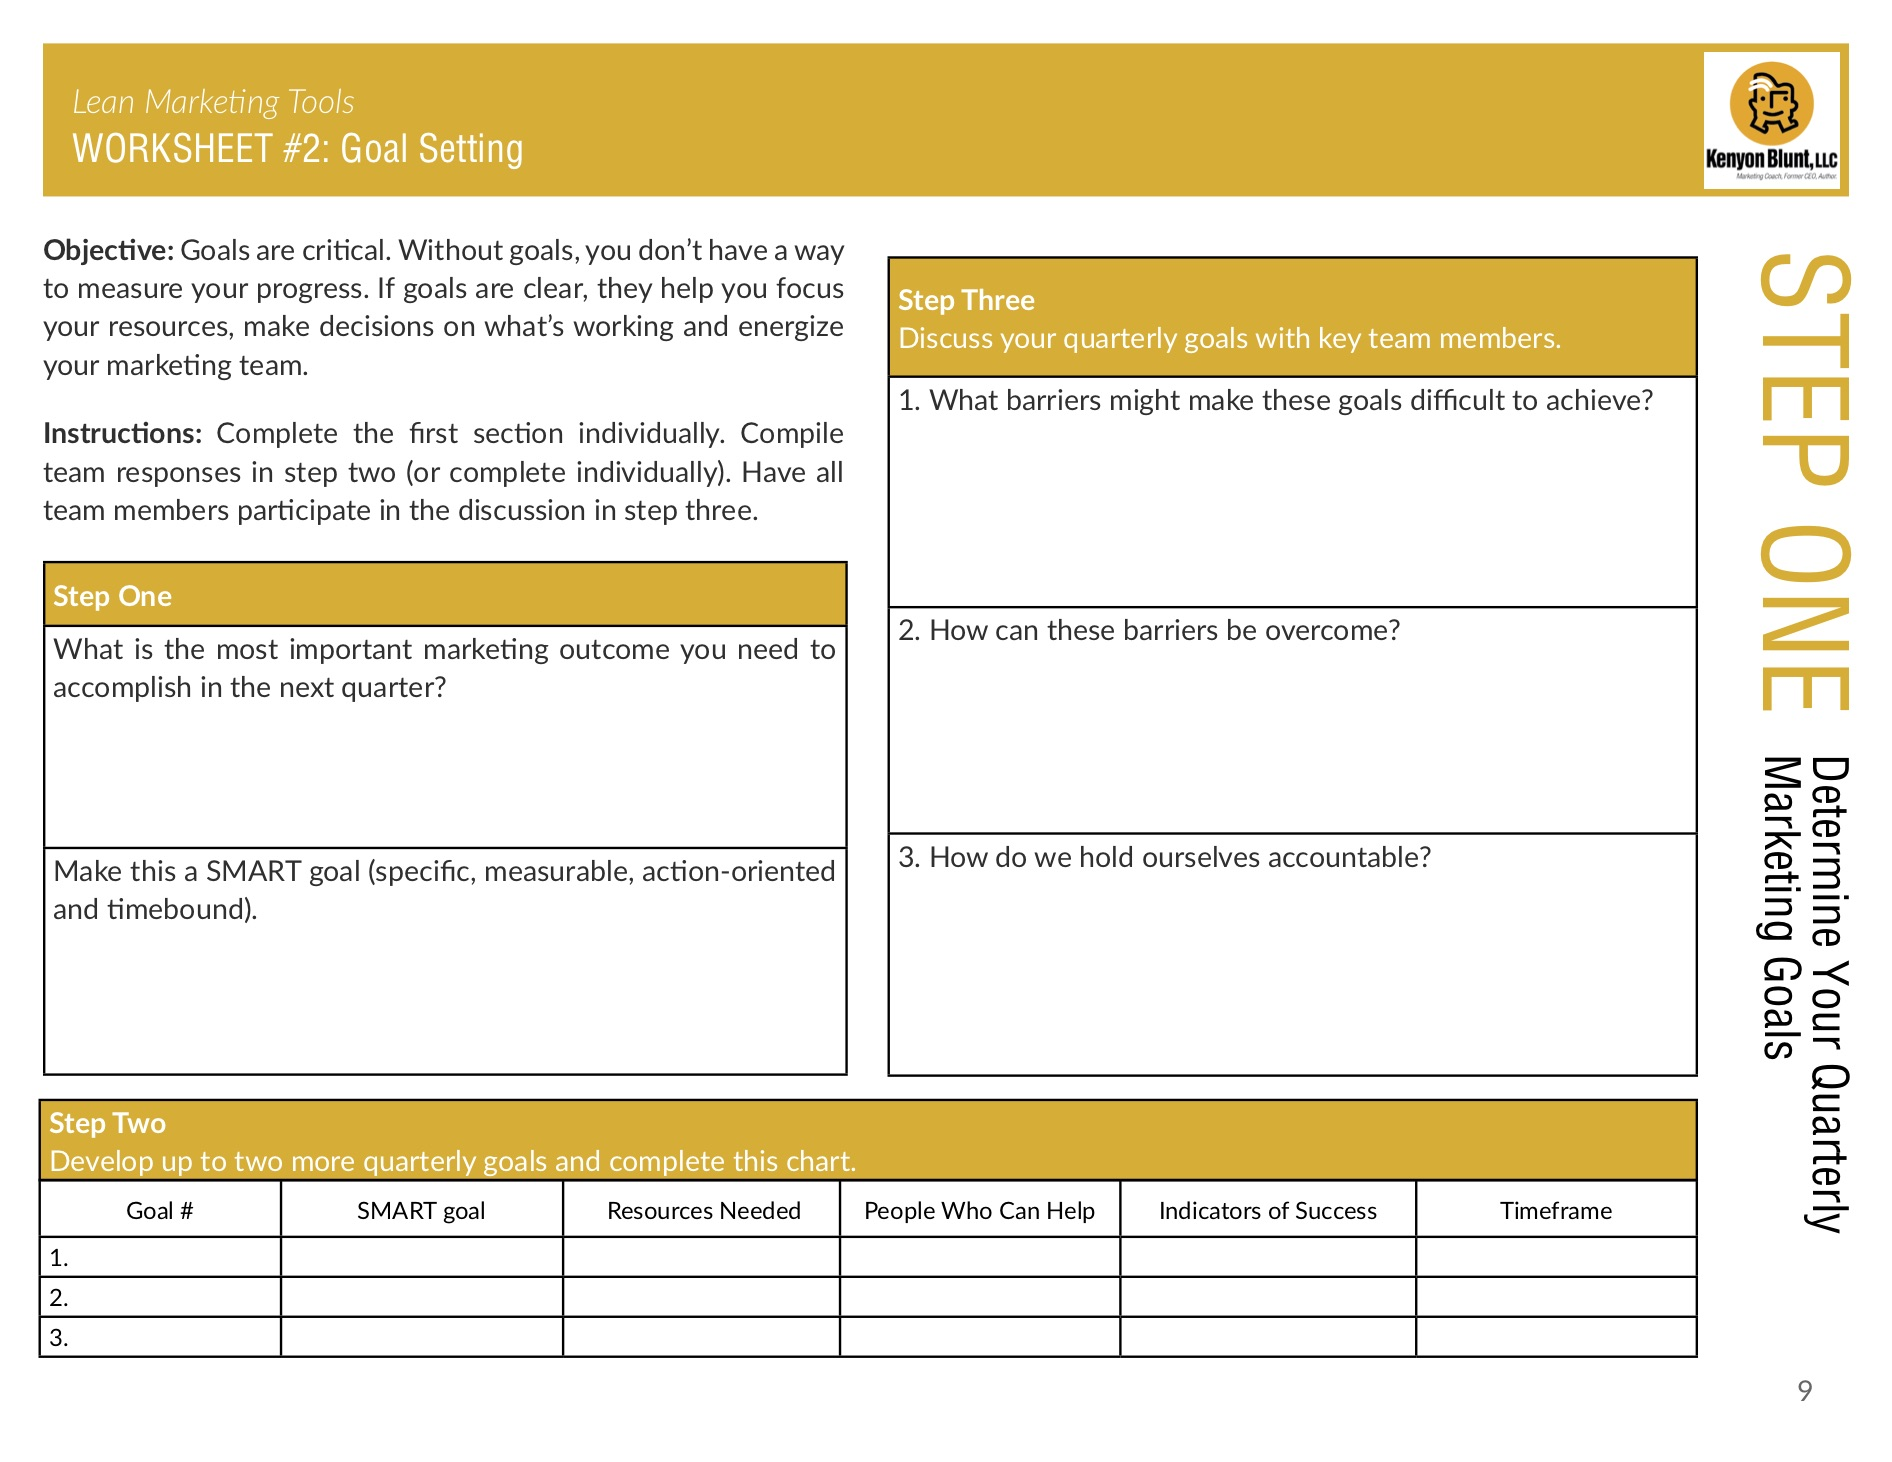 Example of a worksheet in The Lean Marketing Tools Participant Workbook by Kenyon Blunt.